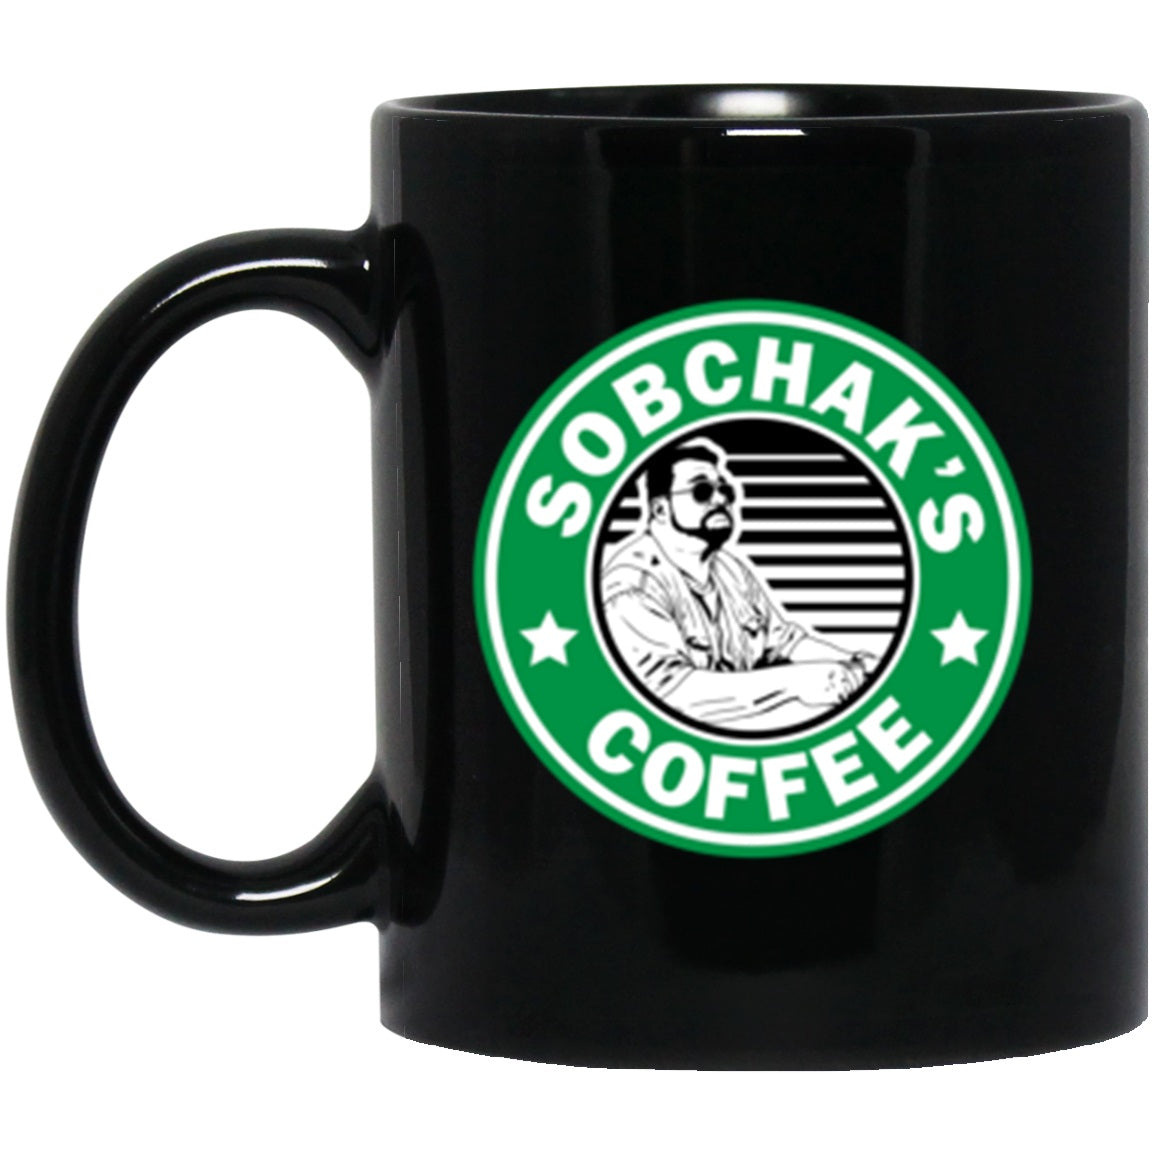 Drinkware - Sobchak's Coffee Mug 11oz (2-sided)